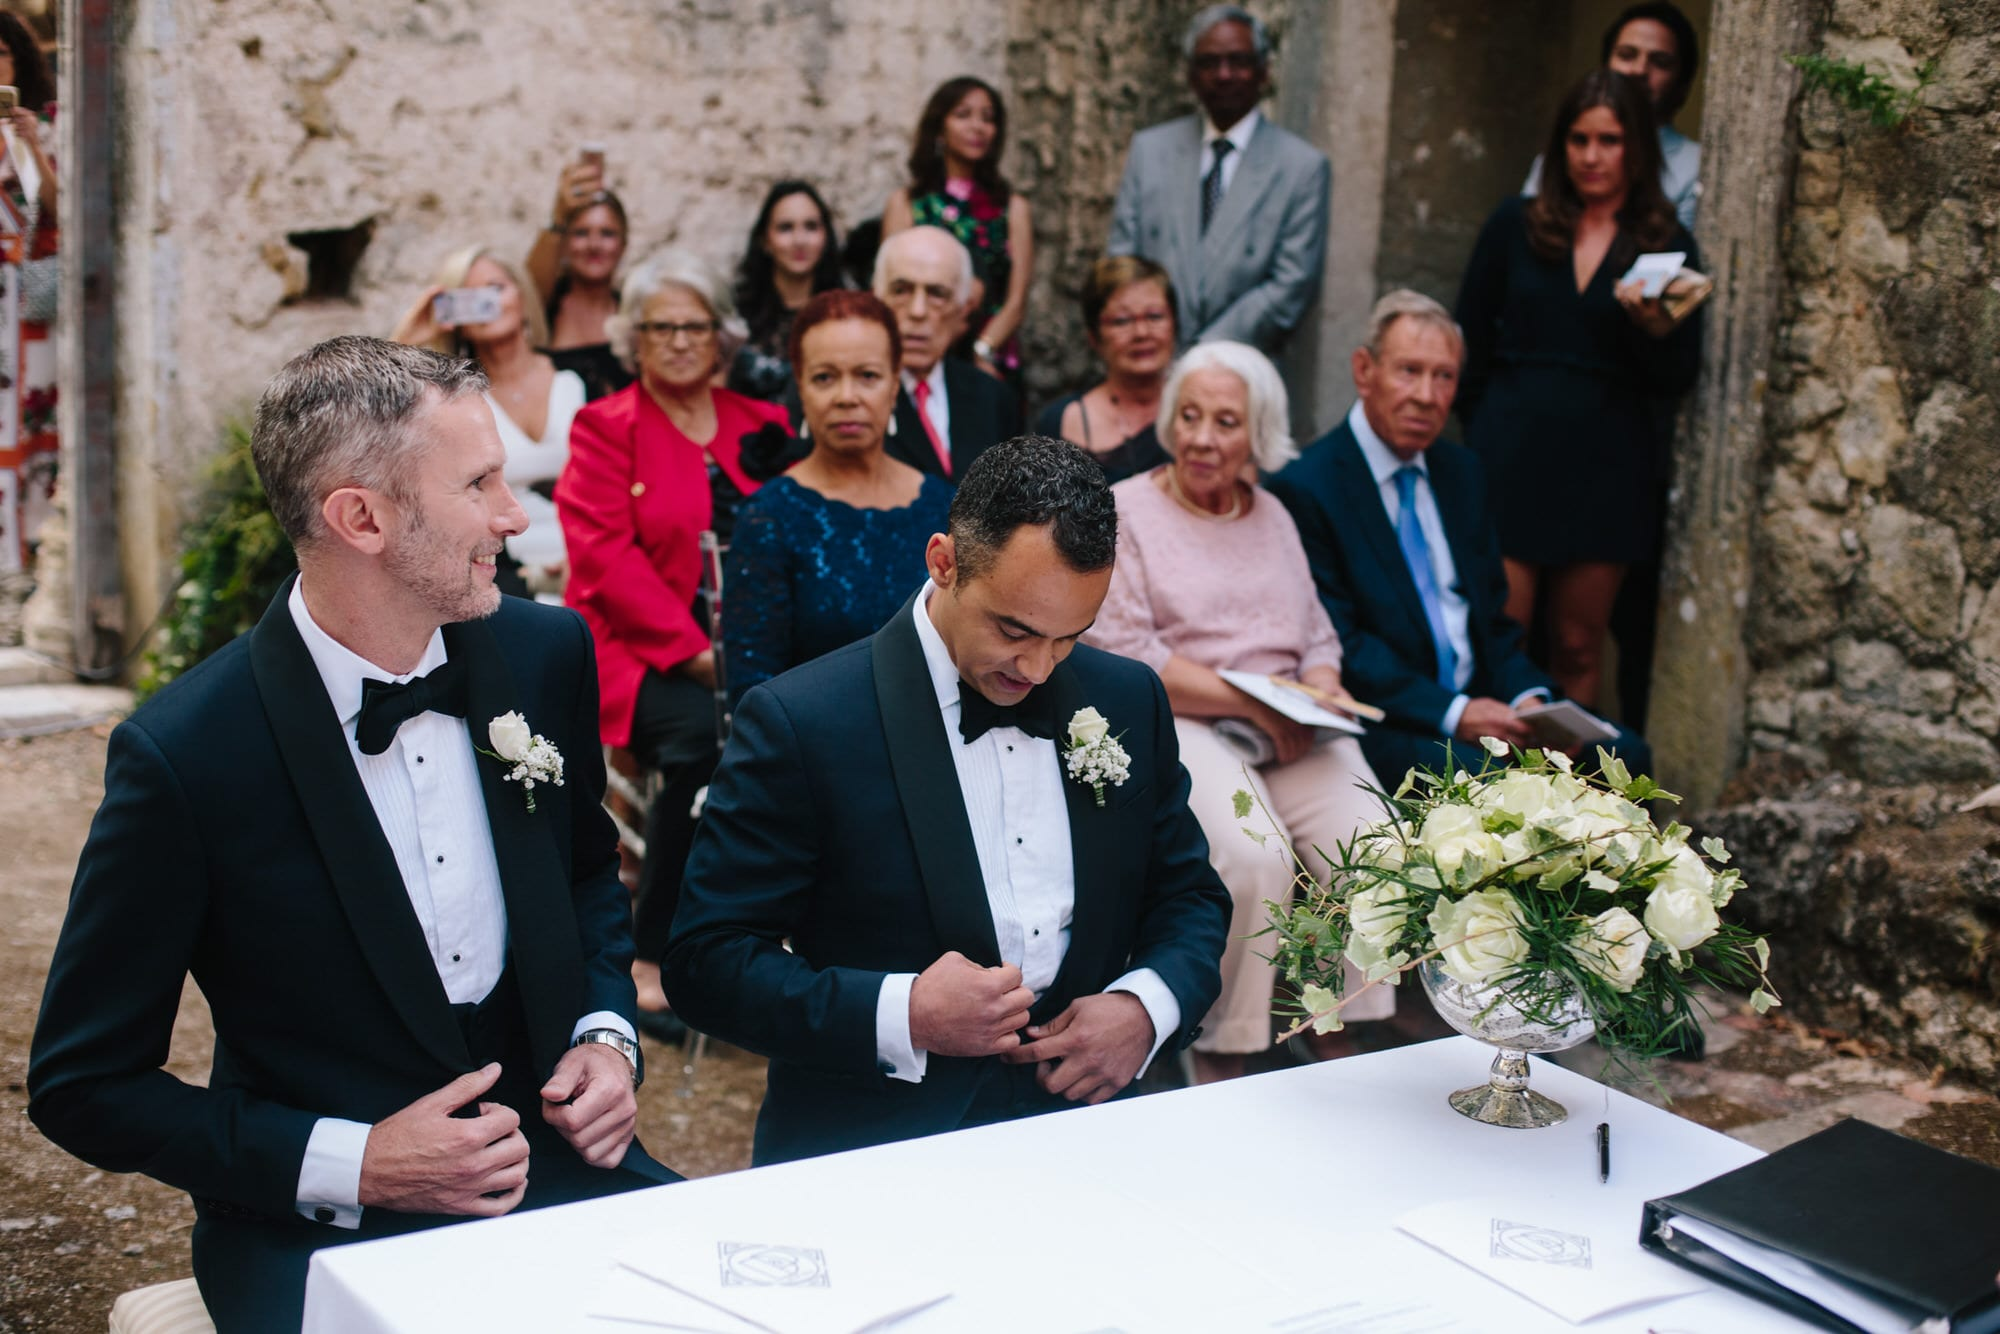 Two grooms take their seats at the ceremony on their wedding day